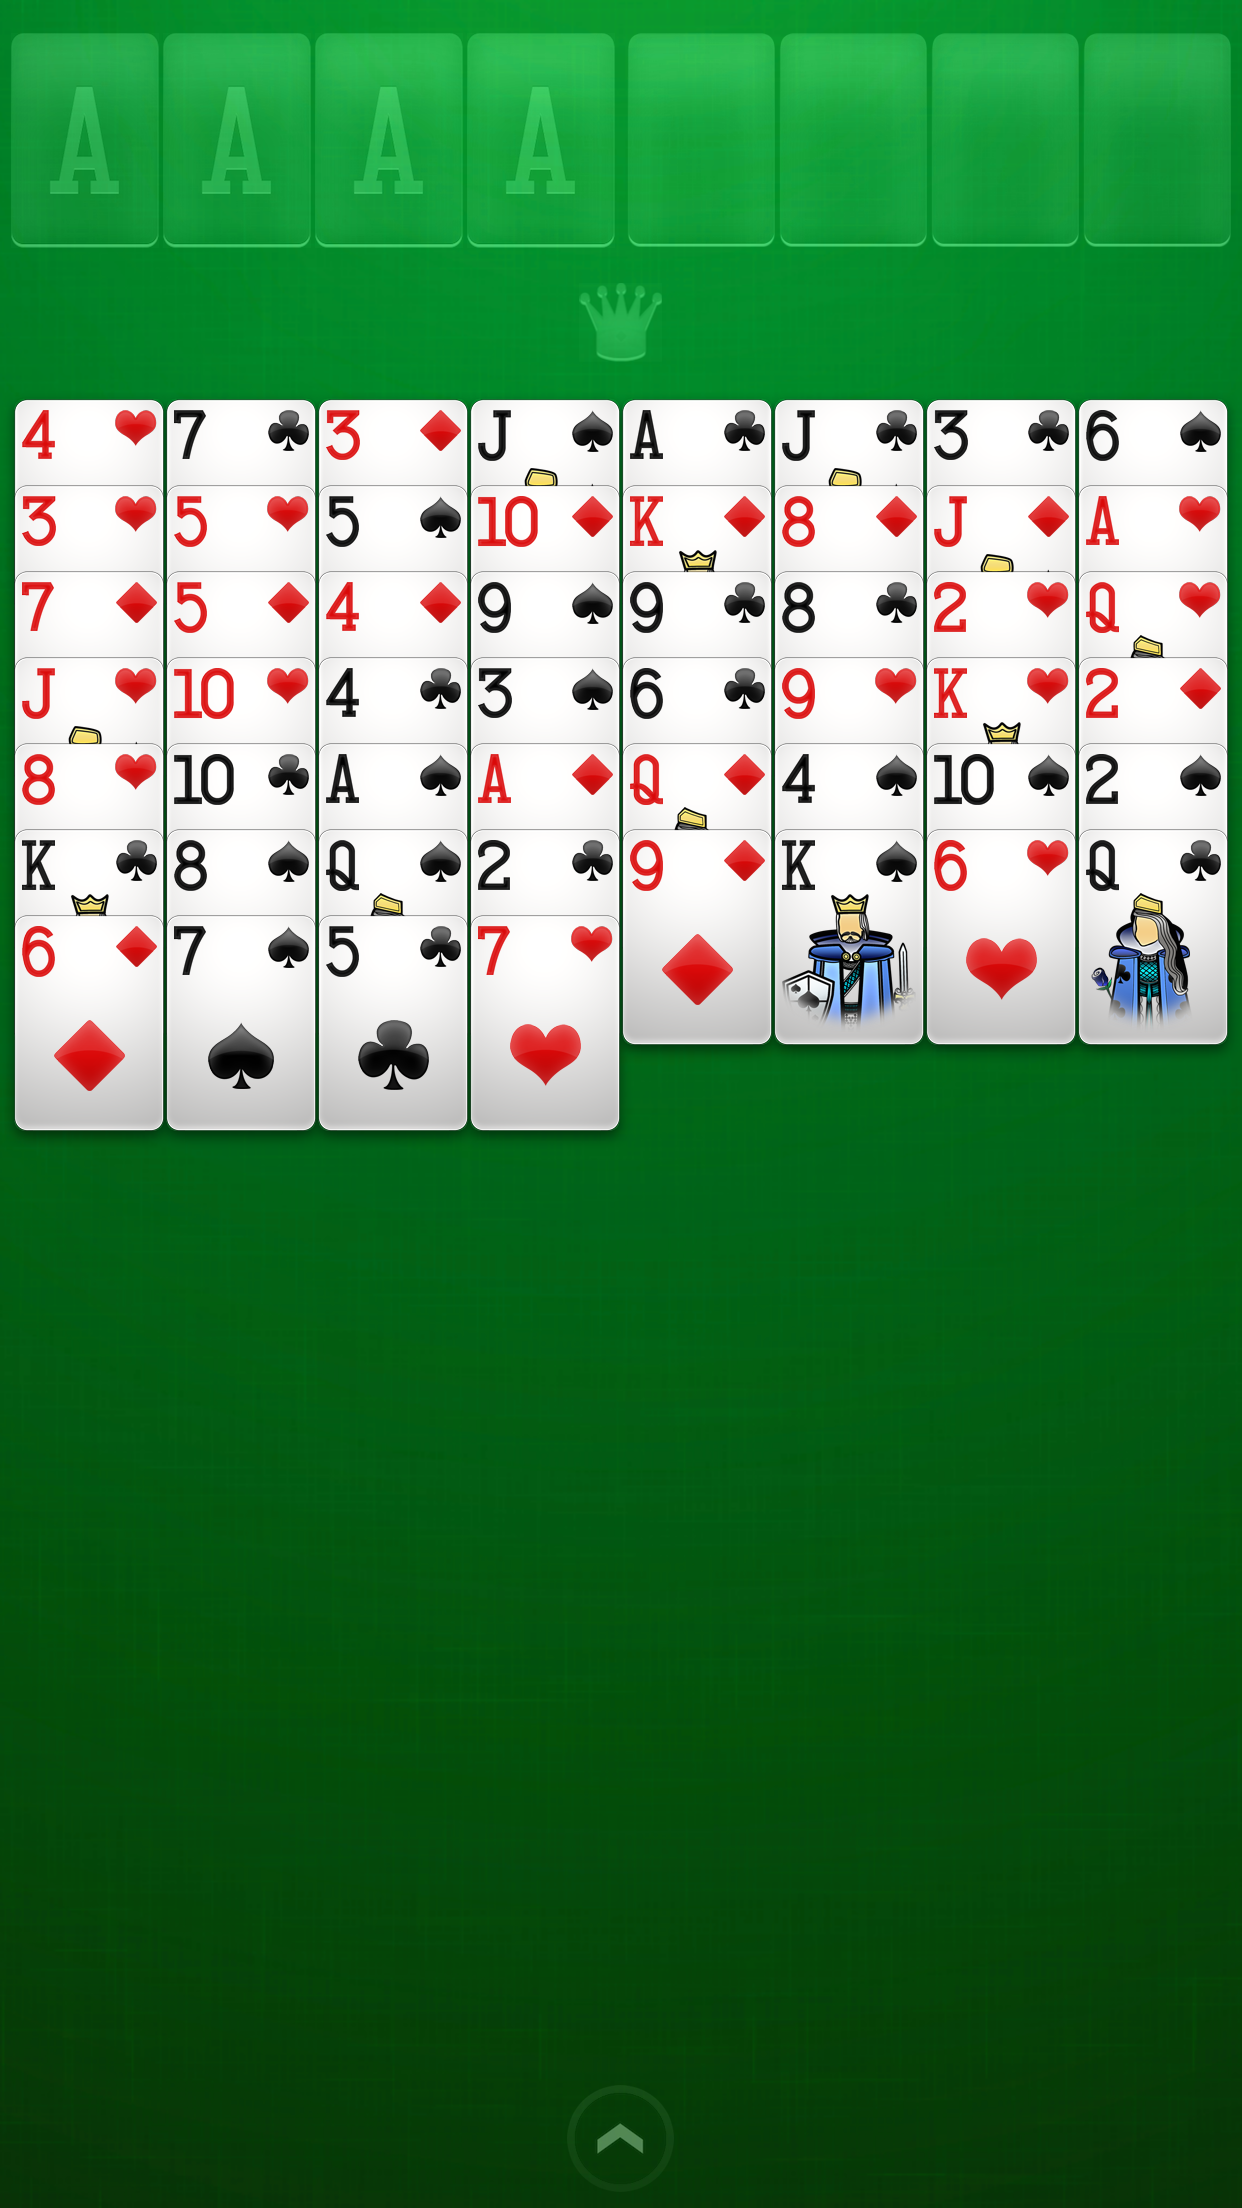 FreeCell Solitaire+ image #1